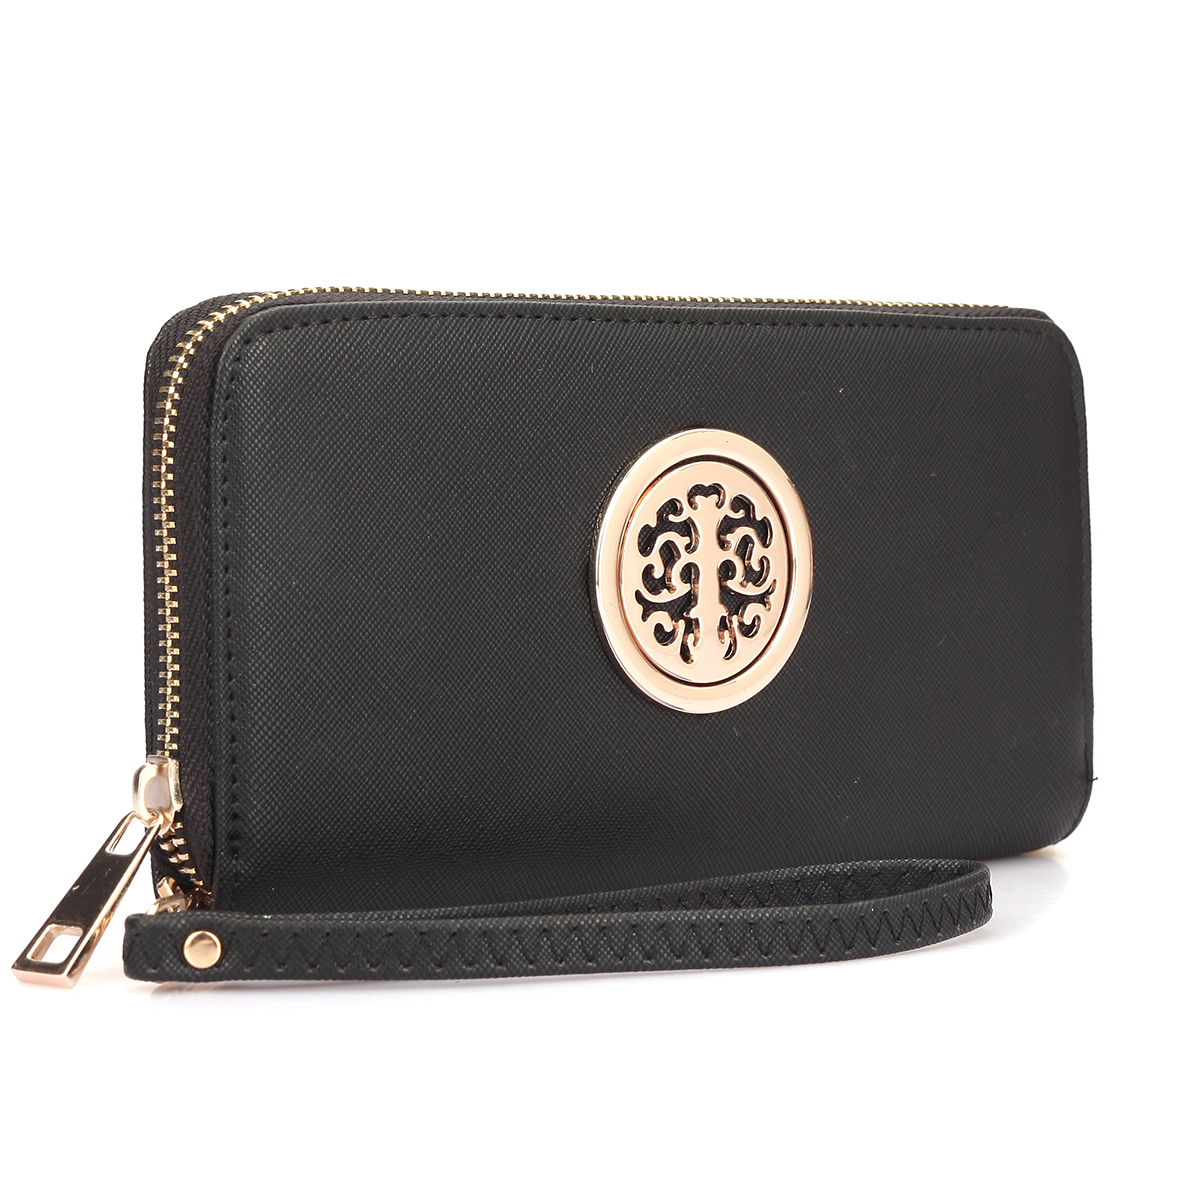 Dasein Zip Around Emblem Wallet Purse - Black photo